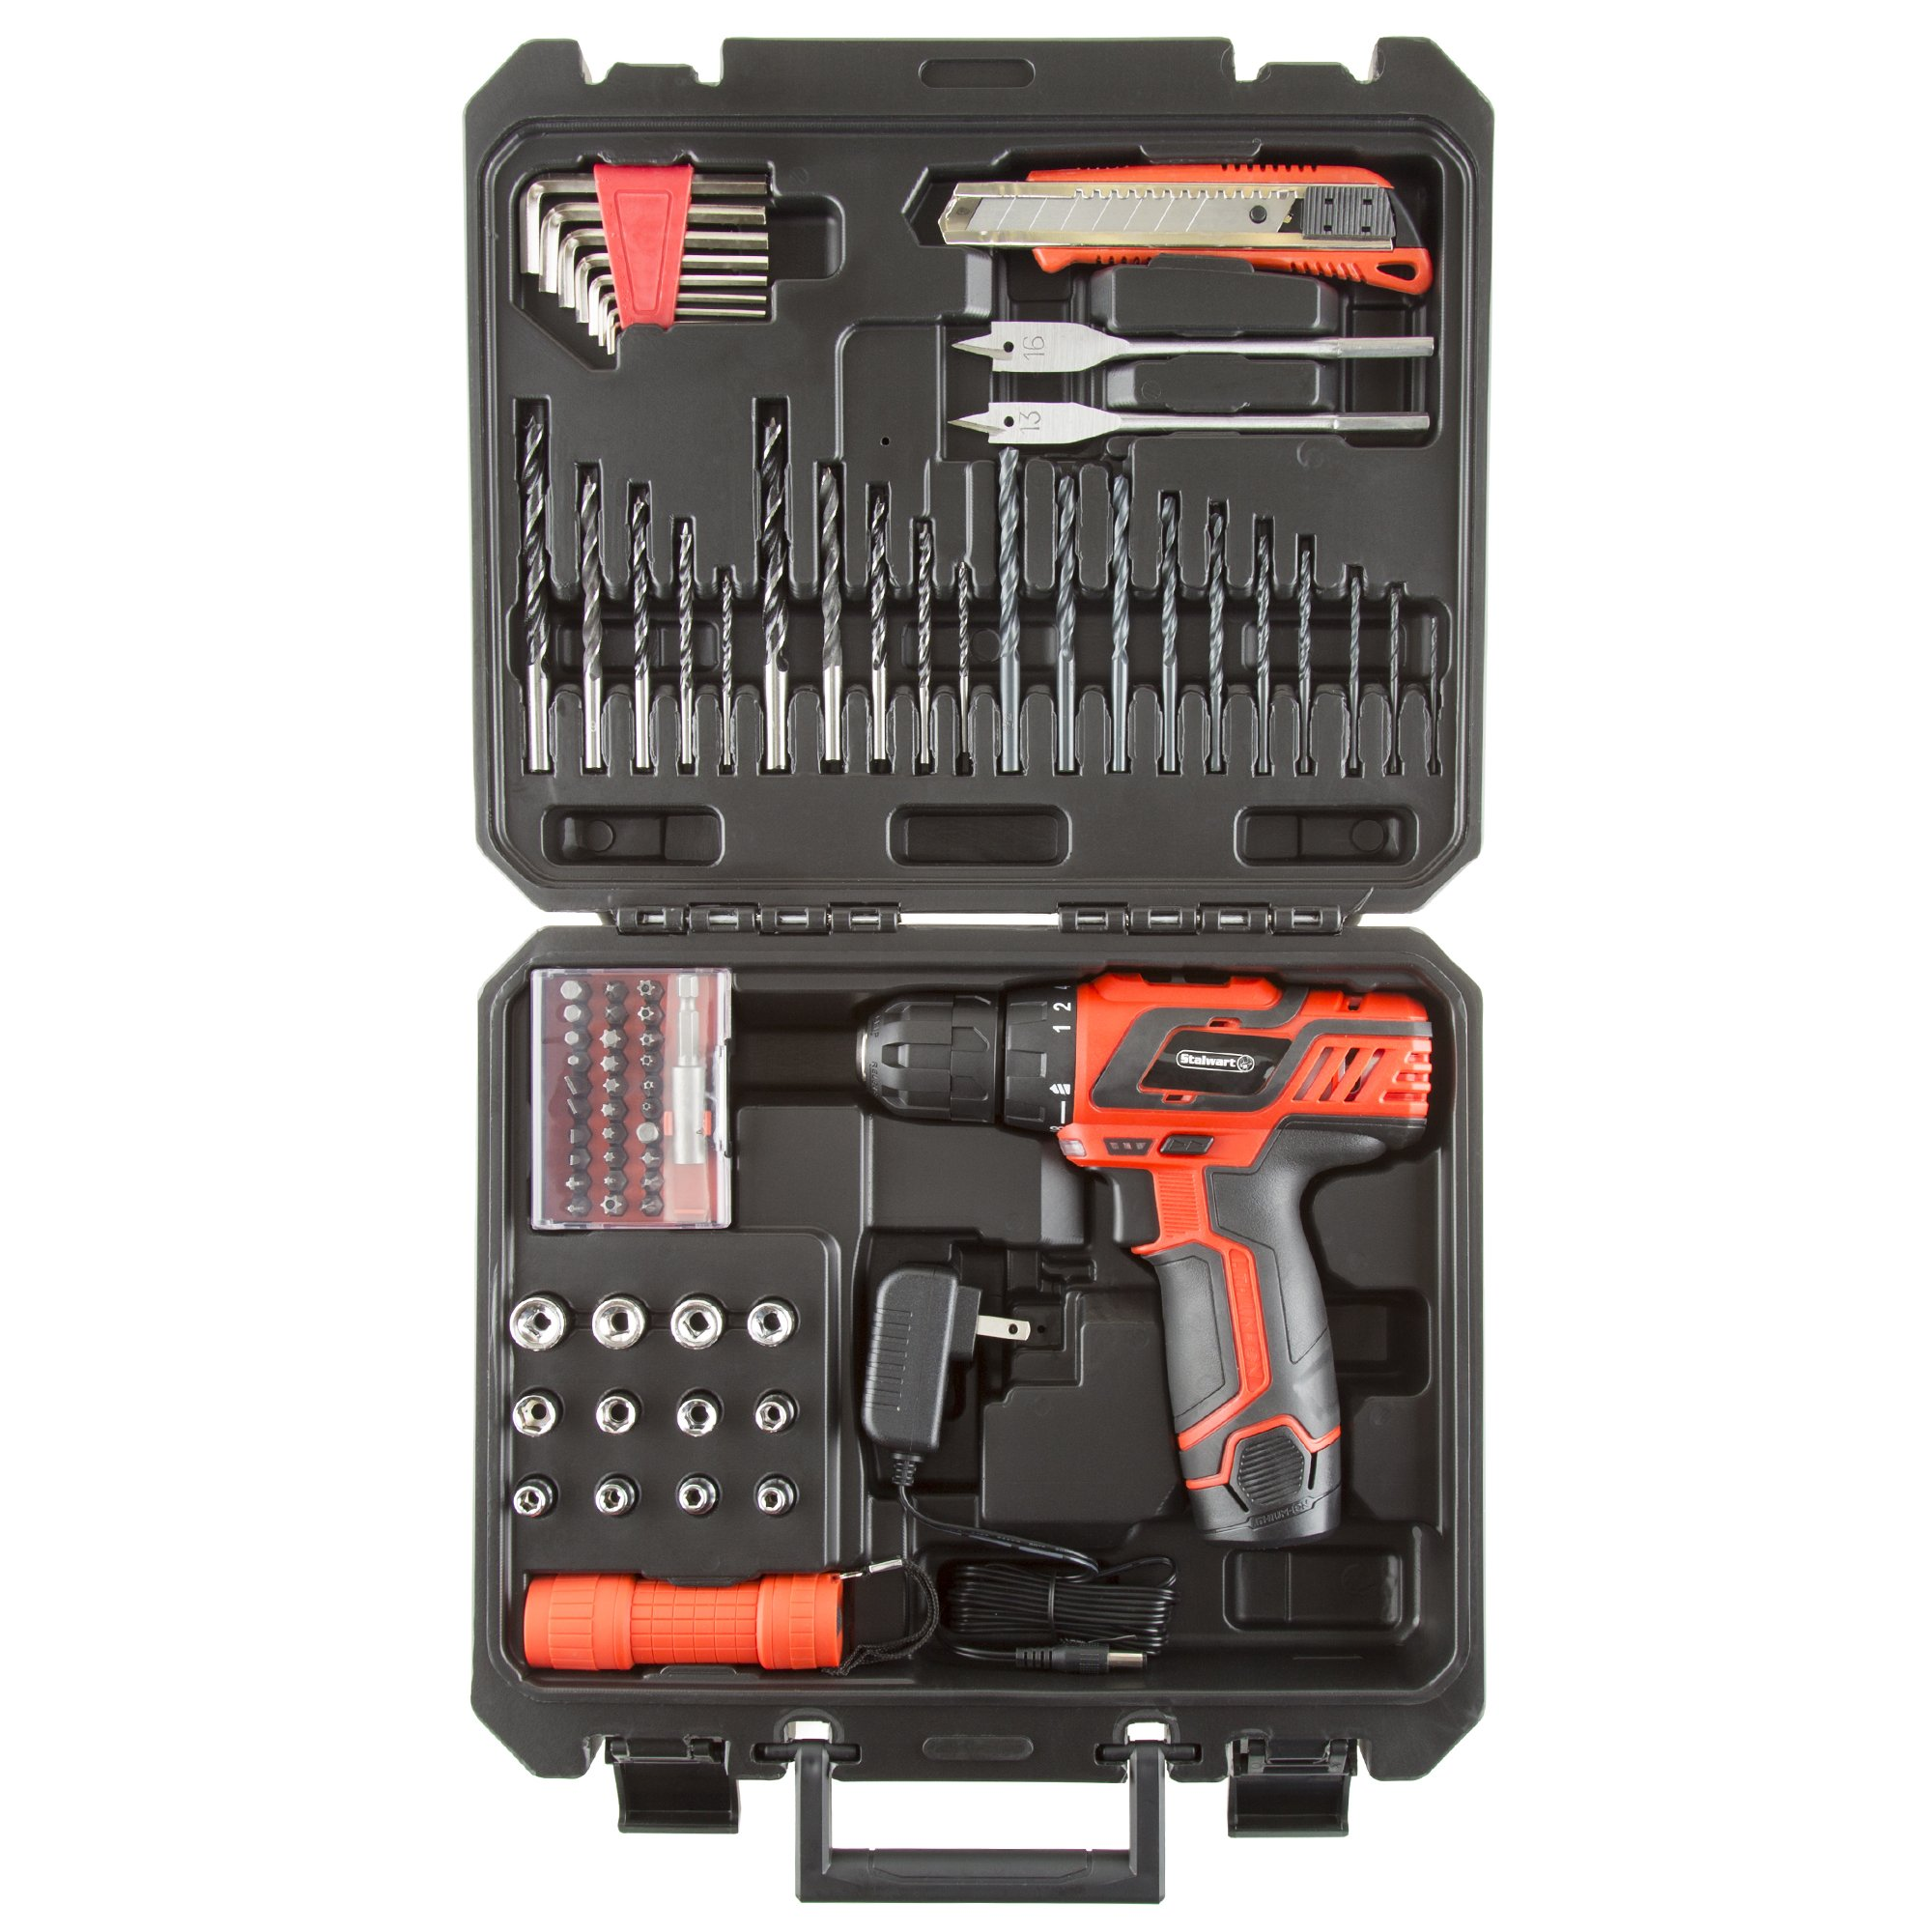 Stalwart 75-PT1003 12V Lithium Ion 75 Pc 2 Speed Drill & Accessory Tool Set, by Stalwart (Image #1)